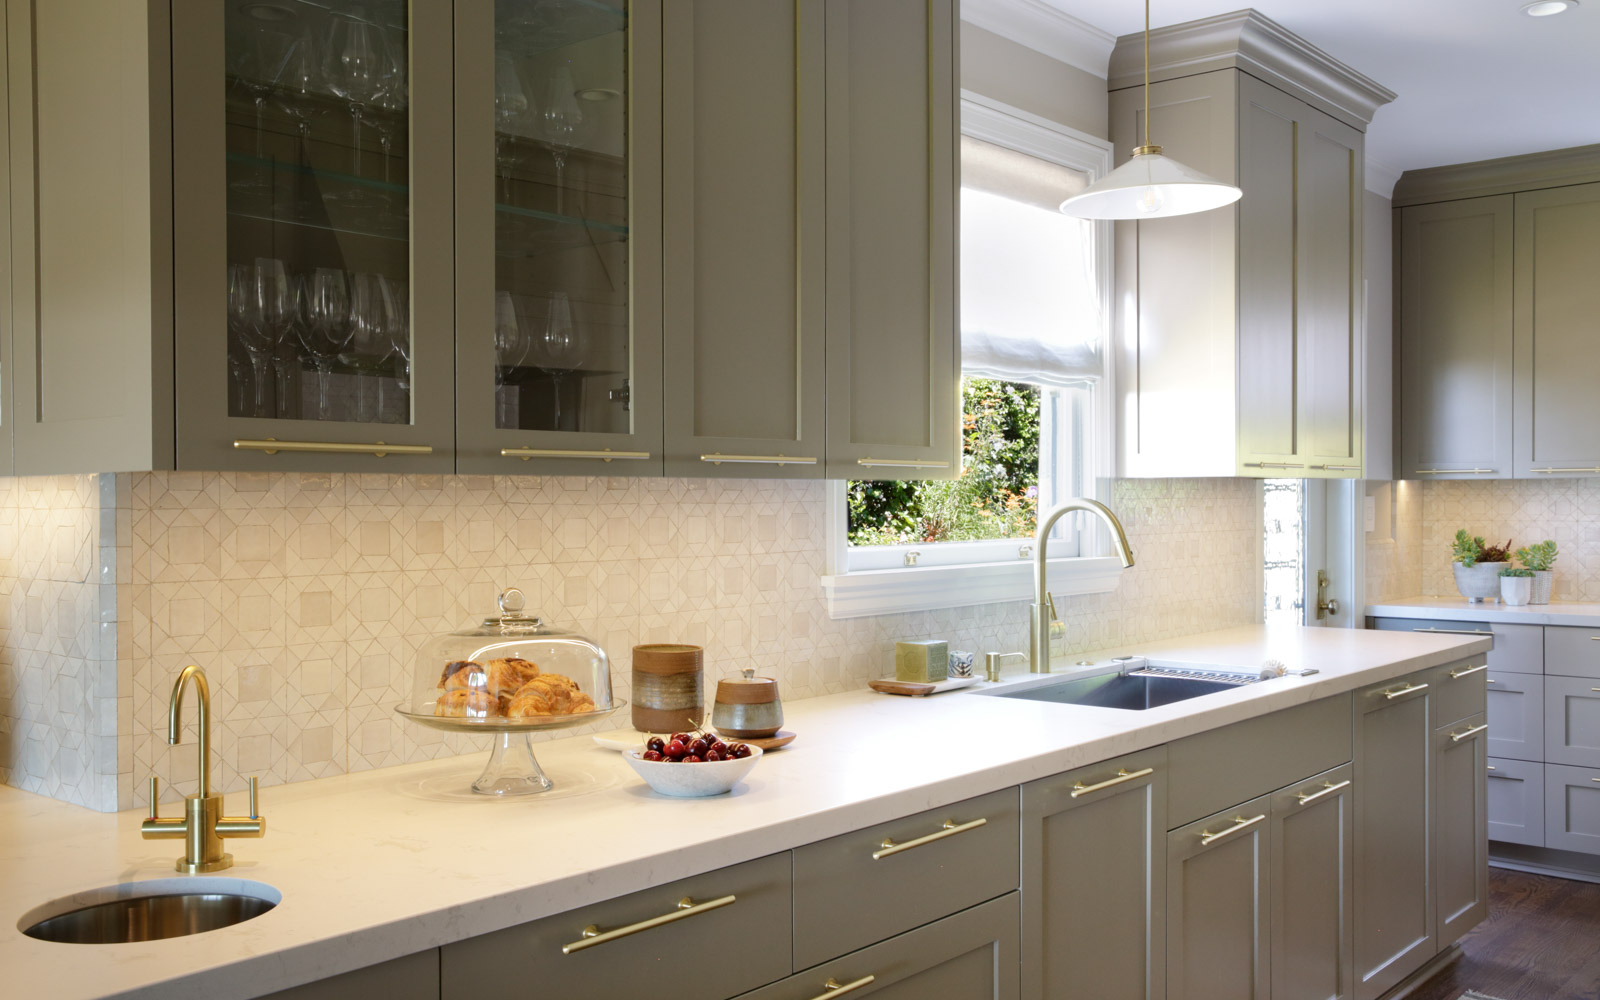 Kitchen remodel demonstrates beauty of Moroccan handmade tile